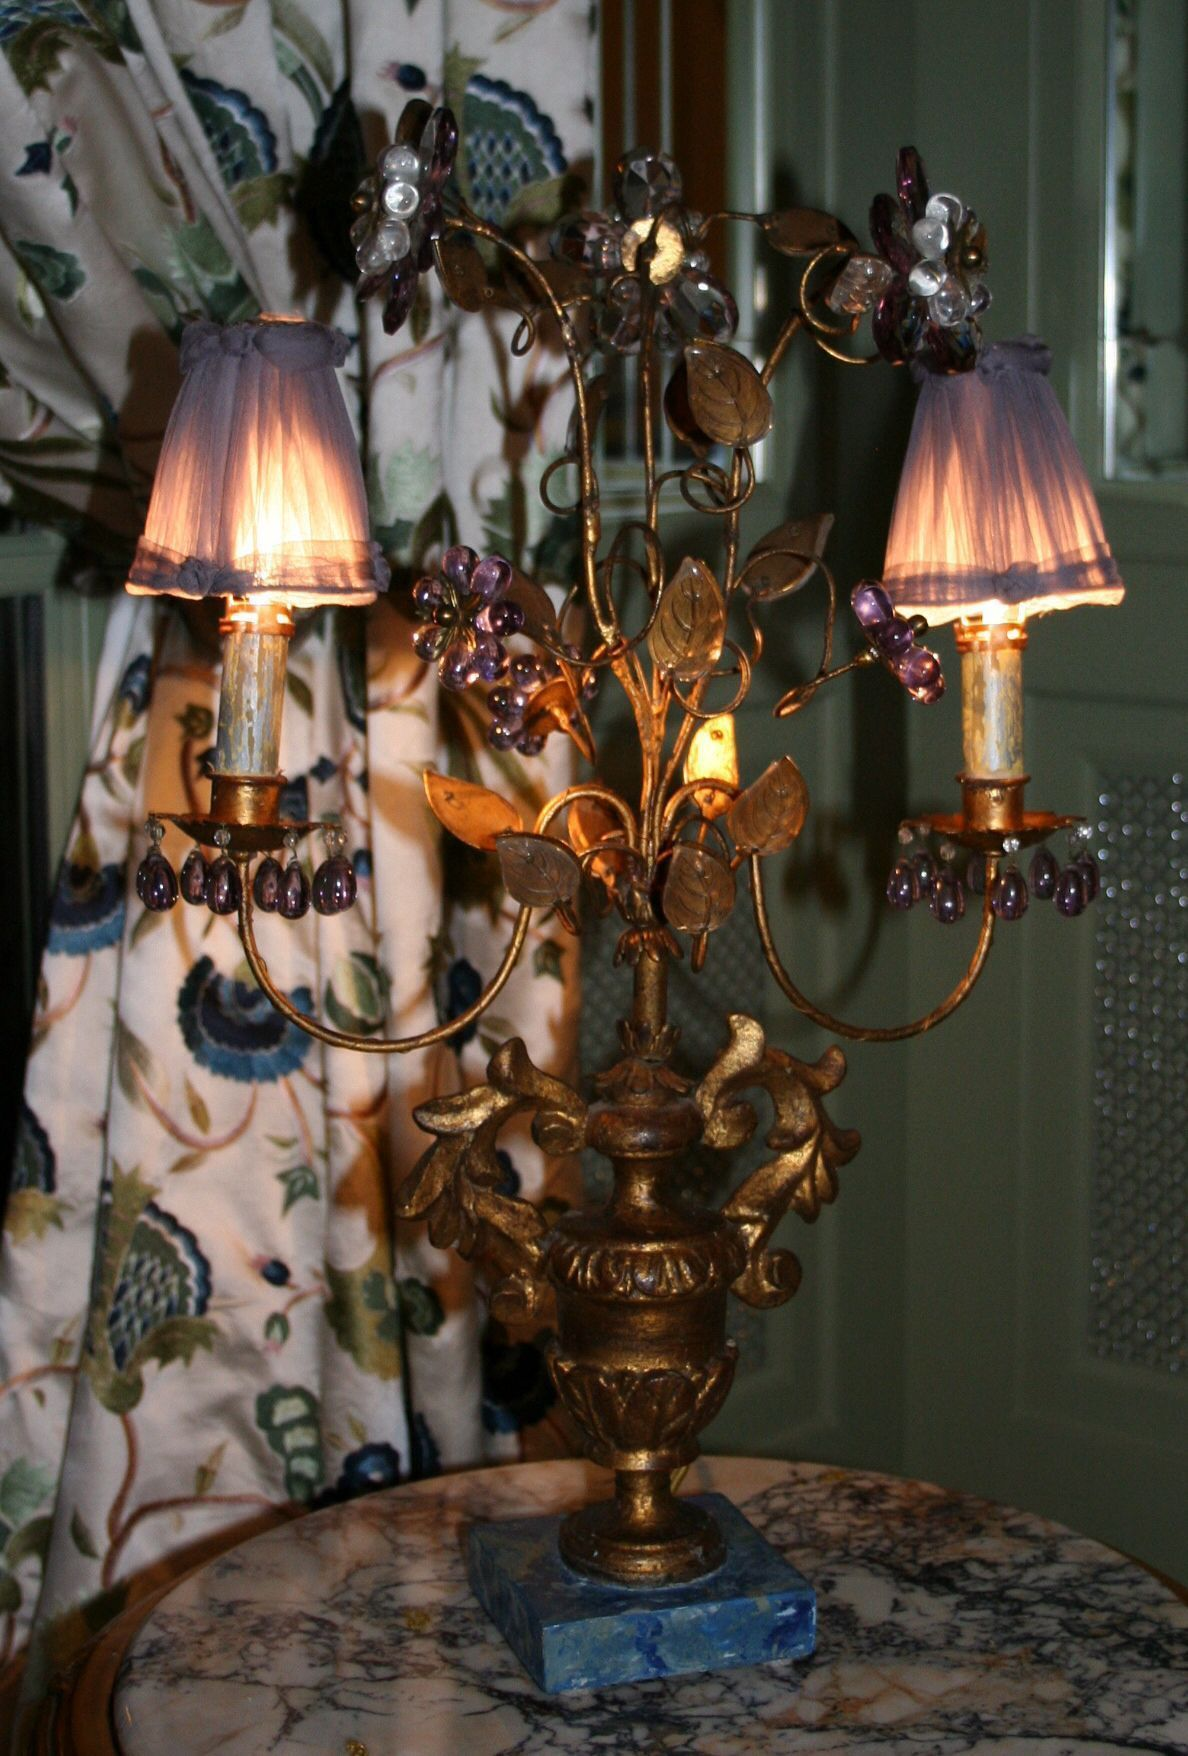 A Mid 19th Century Italian Candlestick Its One Of Pair I Wiring Wooden Lamp Rewired These